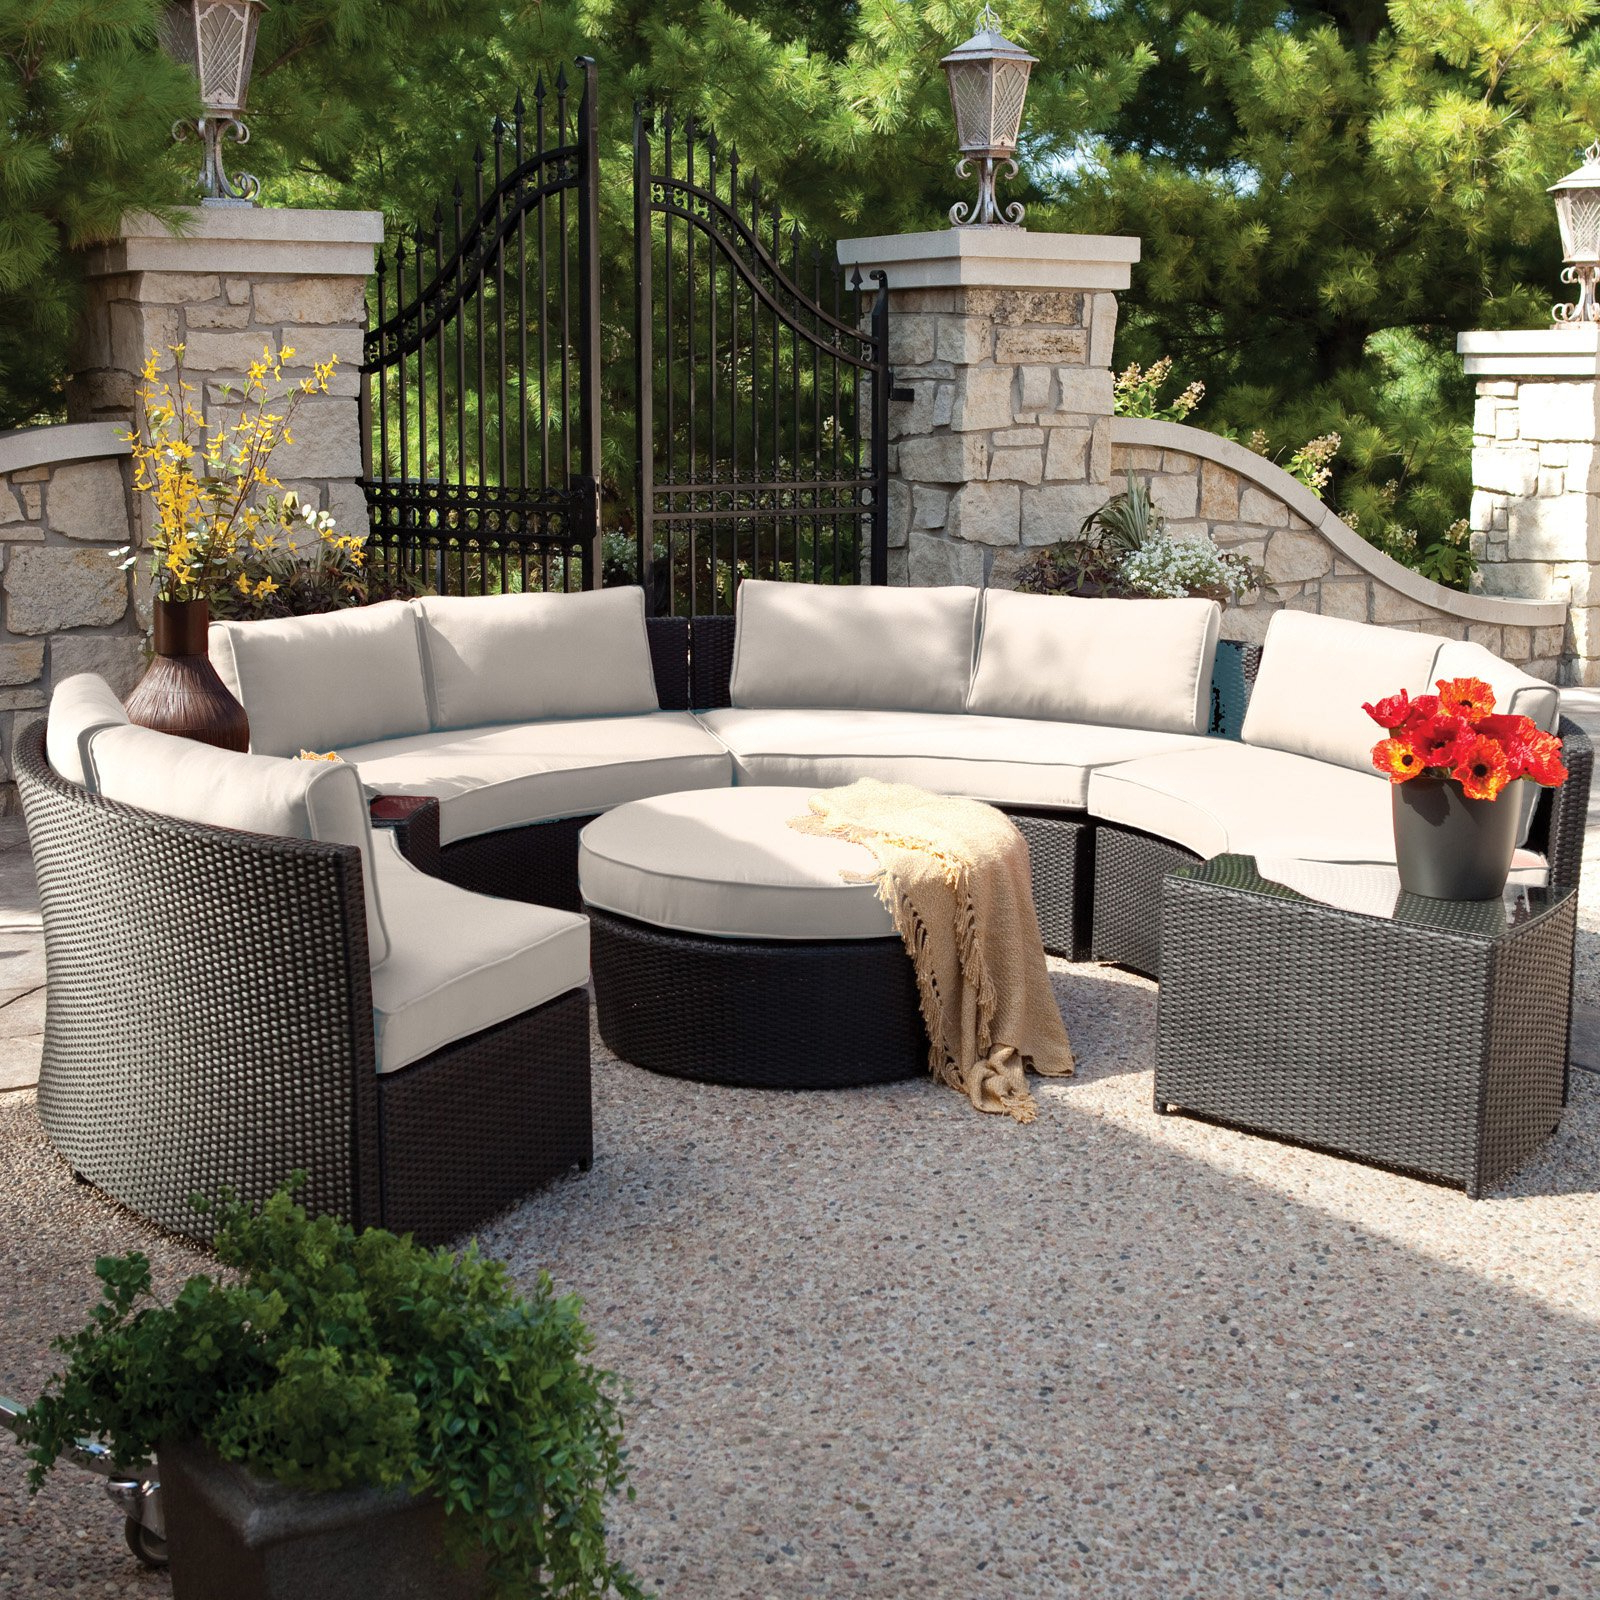 Trendy Ostrowski Patio Sectionals With Cushions With Regard To Resin Wicker Patio Furniture – Home Decor Ideas – Editorial (View 17 of 25)